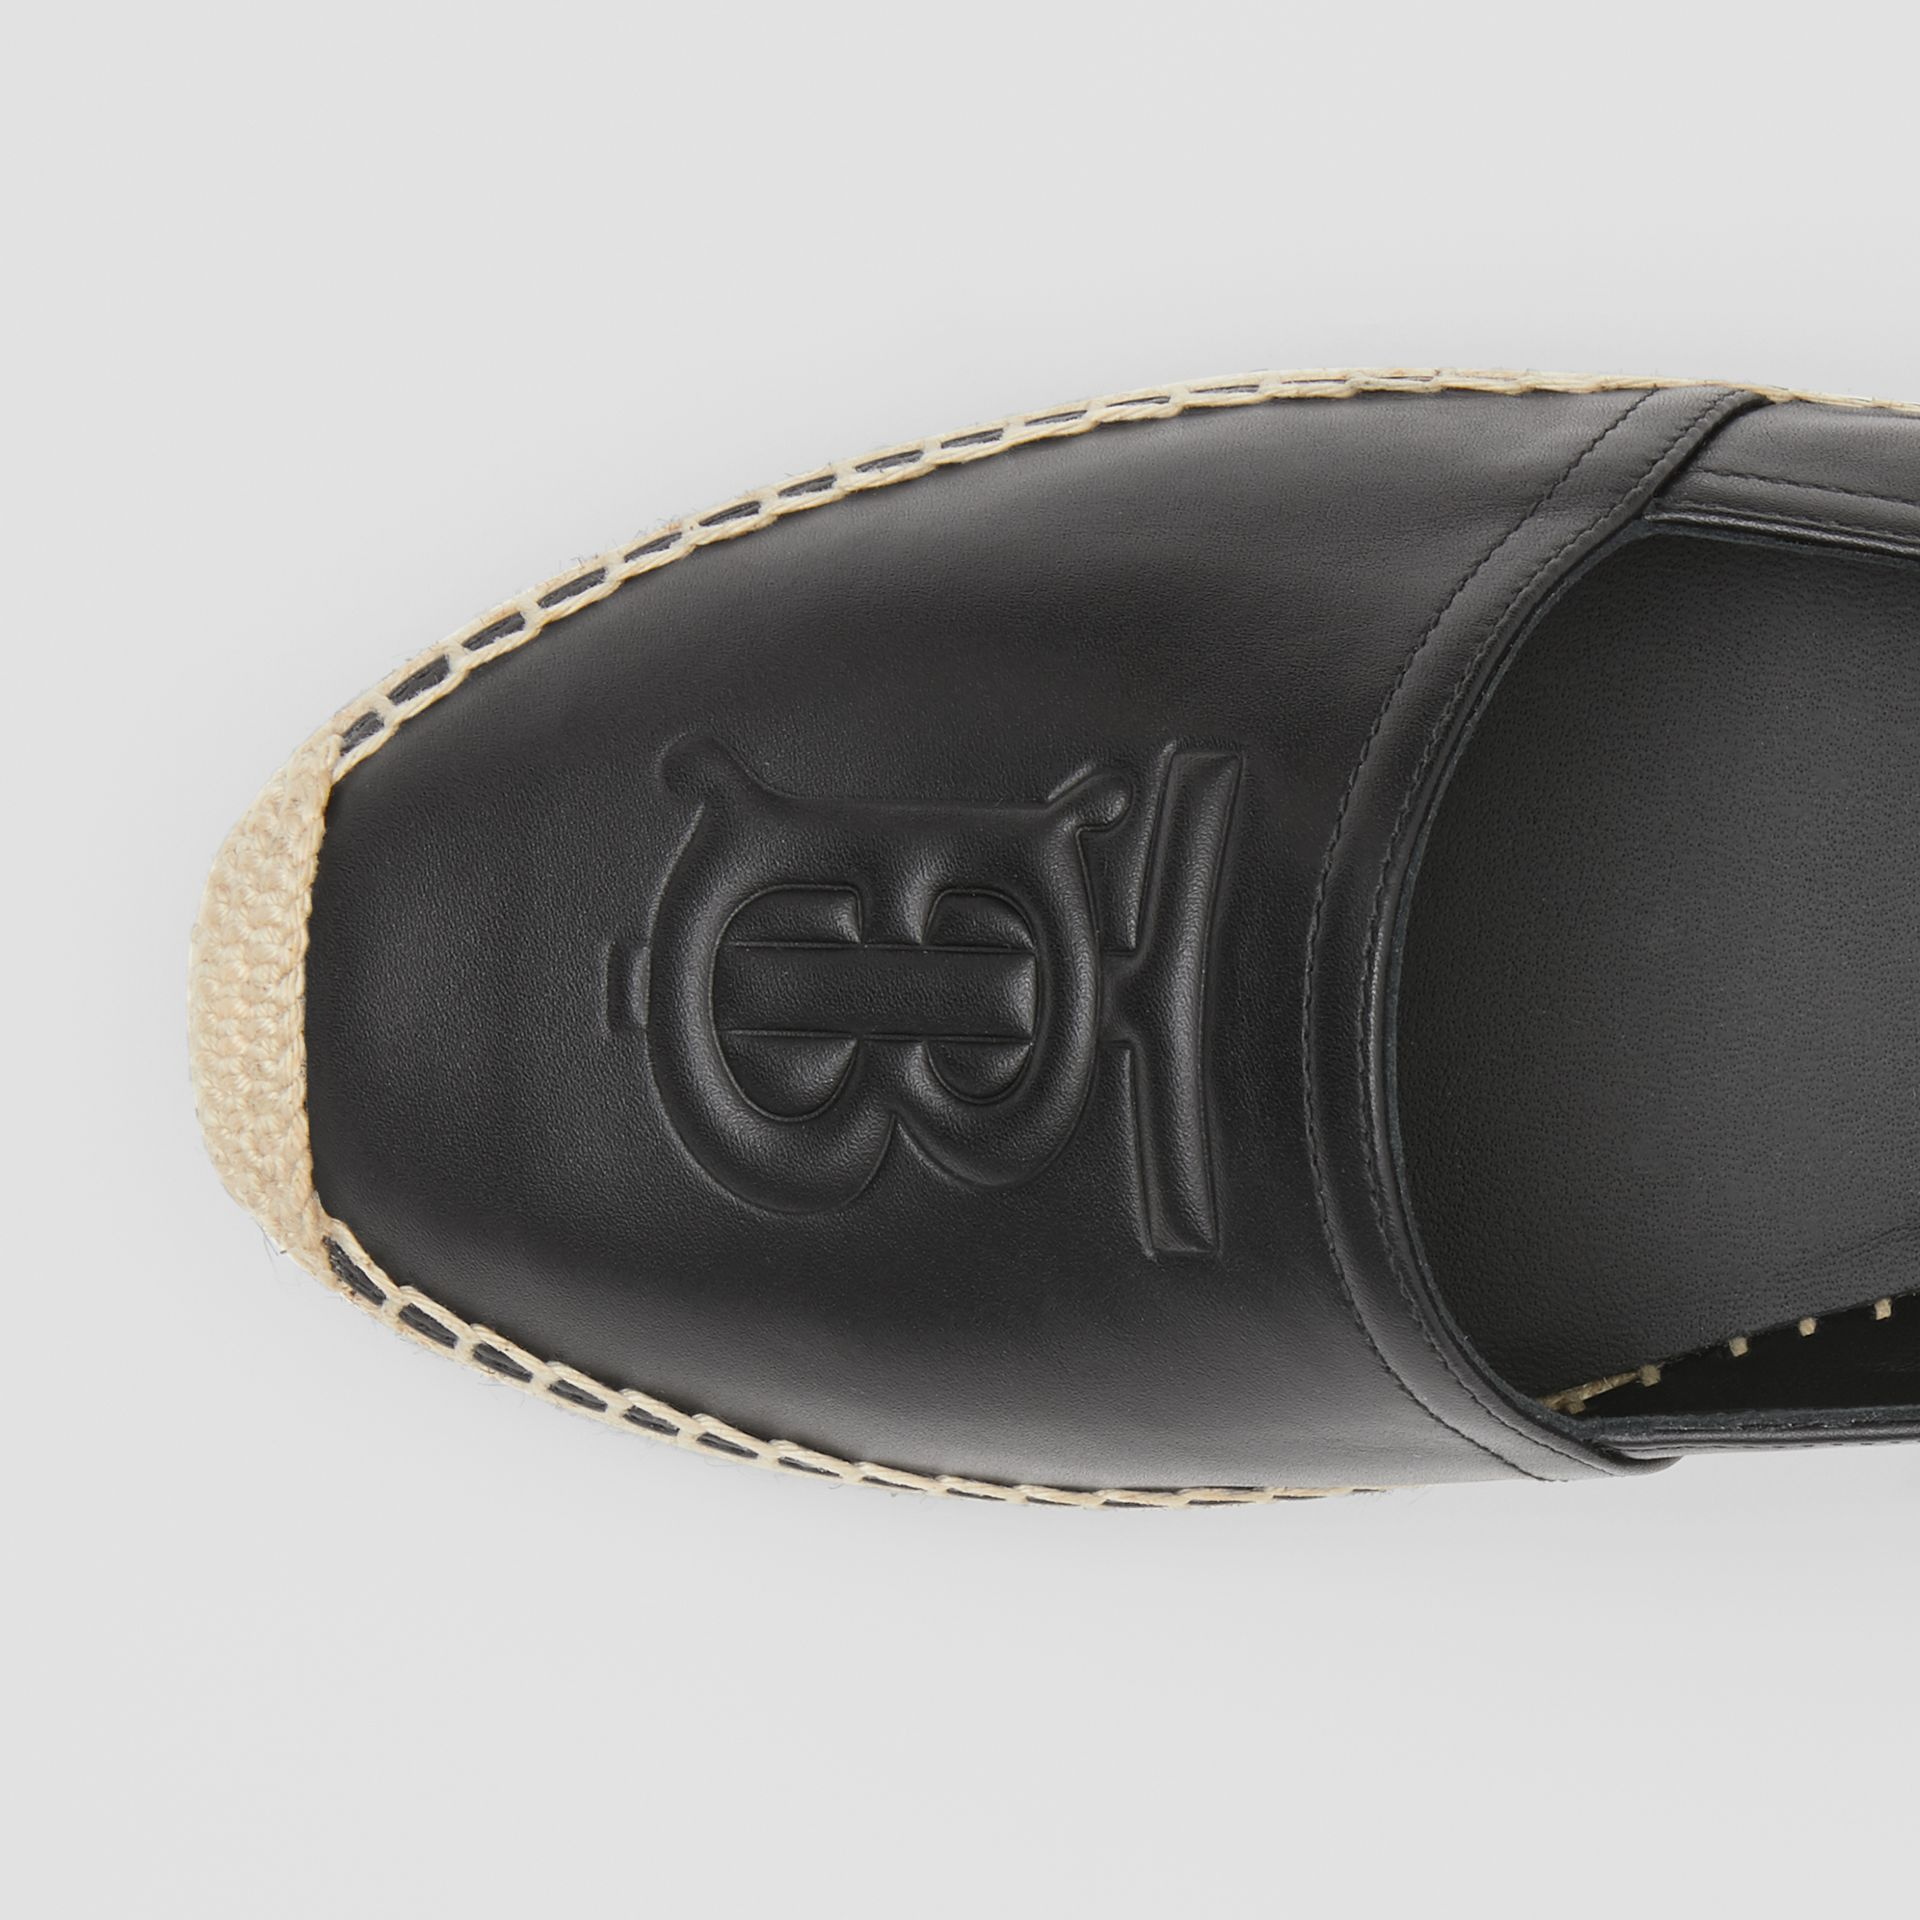 Monogram Motif Leather Espadrilles in Black - Women | Burberry - gallery image 1